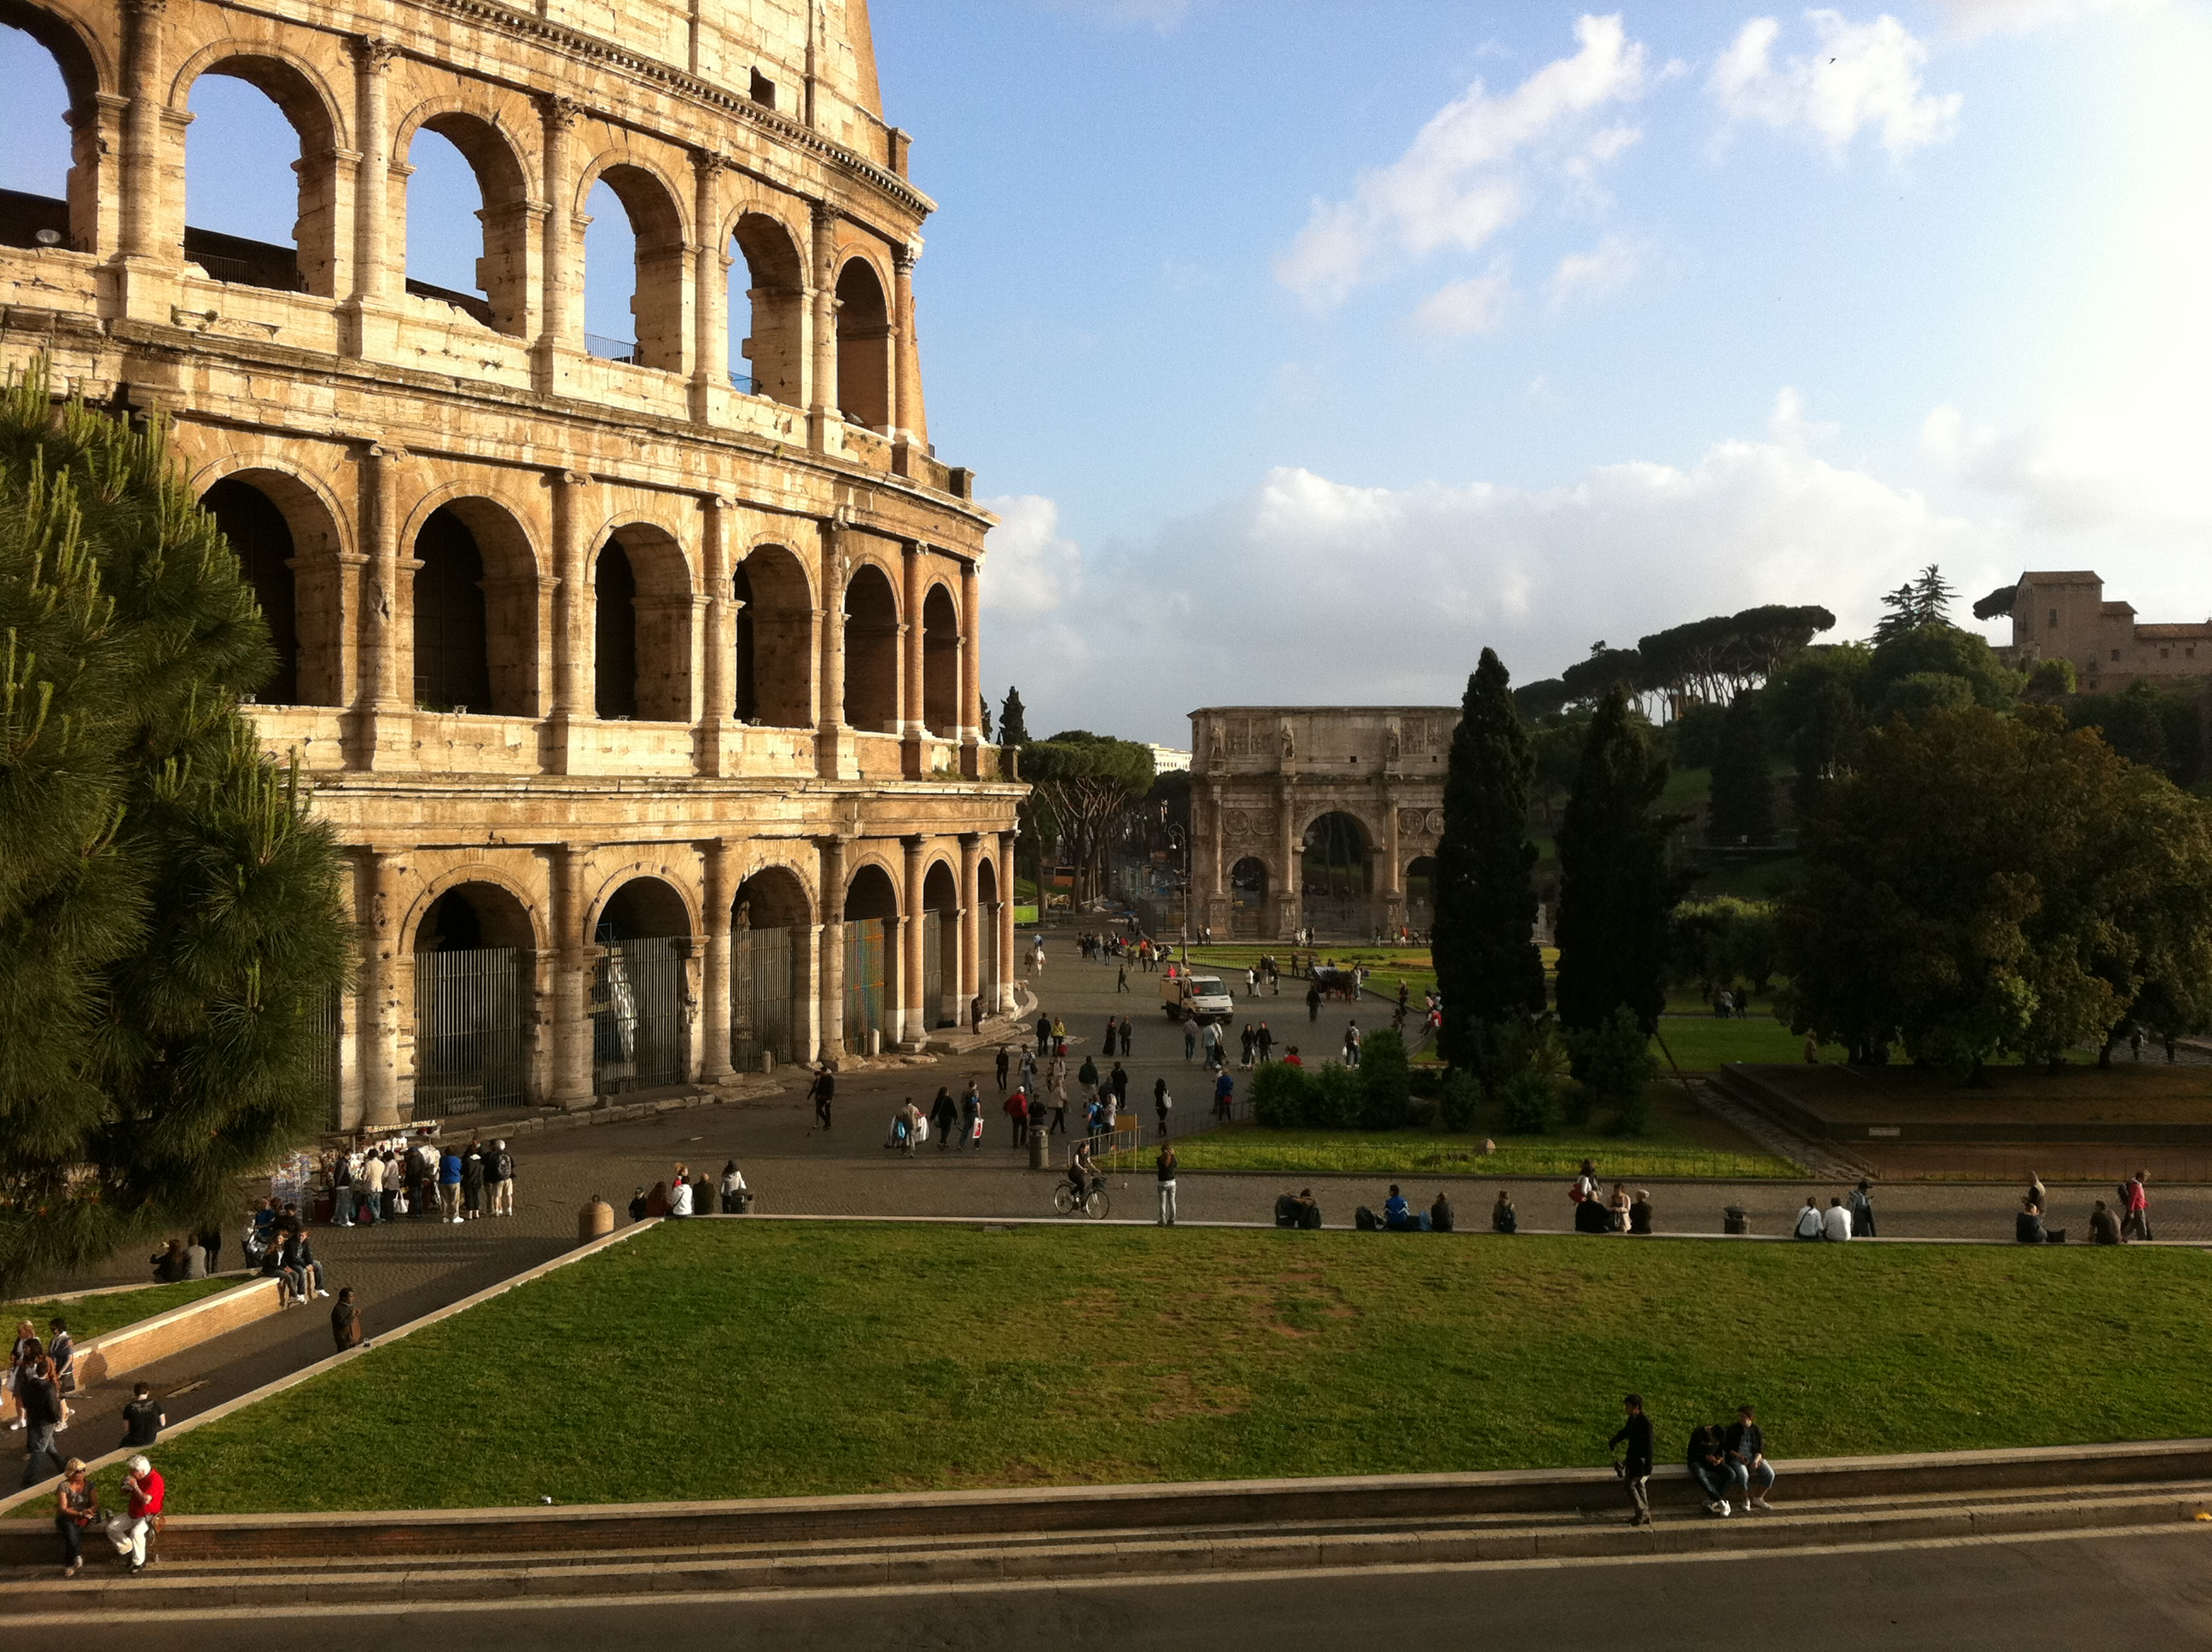 First views of the Coloseum